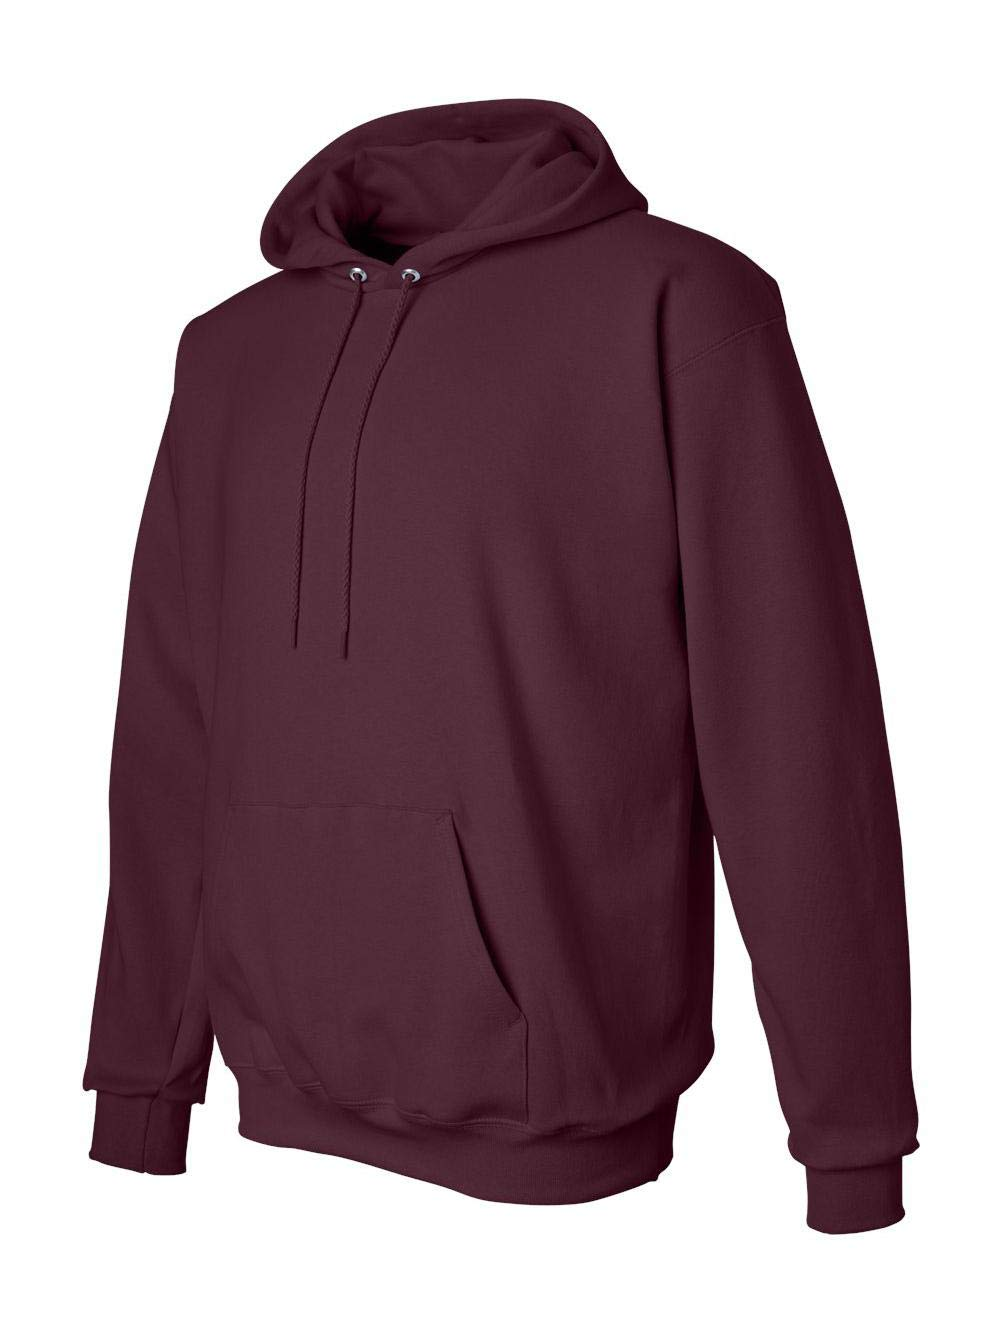 Hanes Adult Ultimate CottonHooded Pullover - Maroon - S by Hanes